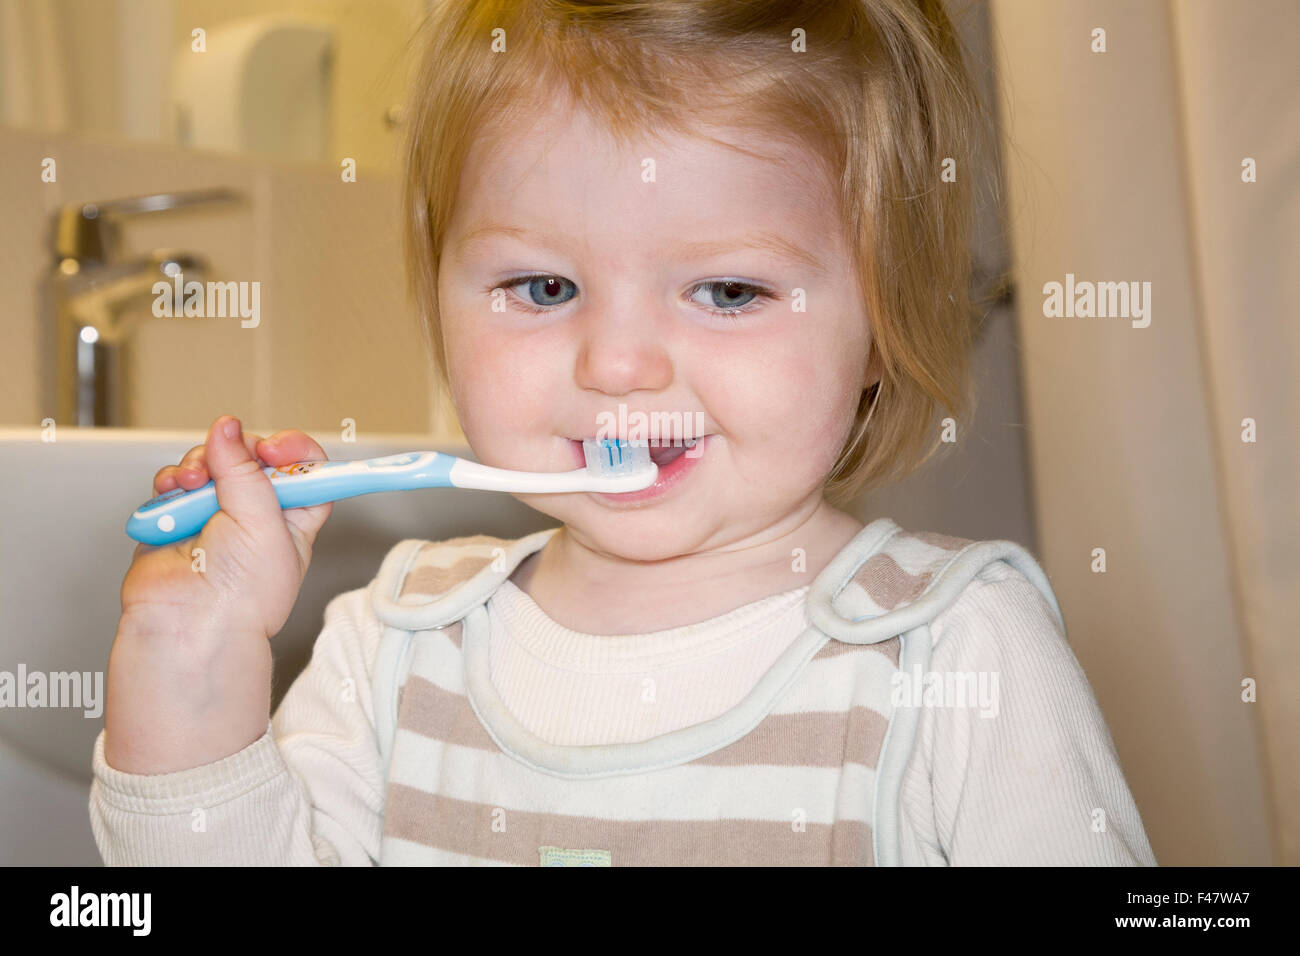 Child / baby practising brushing her teeth with a toothbrush / tooth brush for the first time. Stock Photo